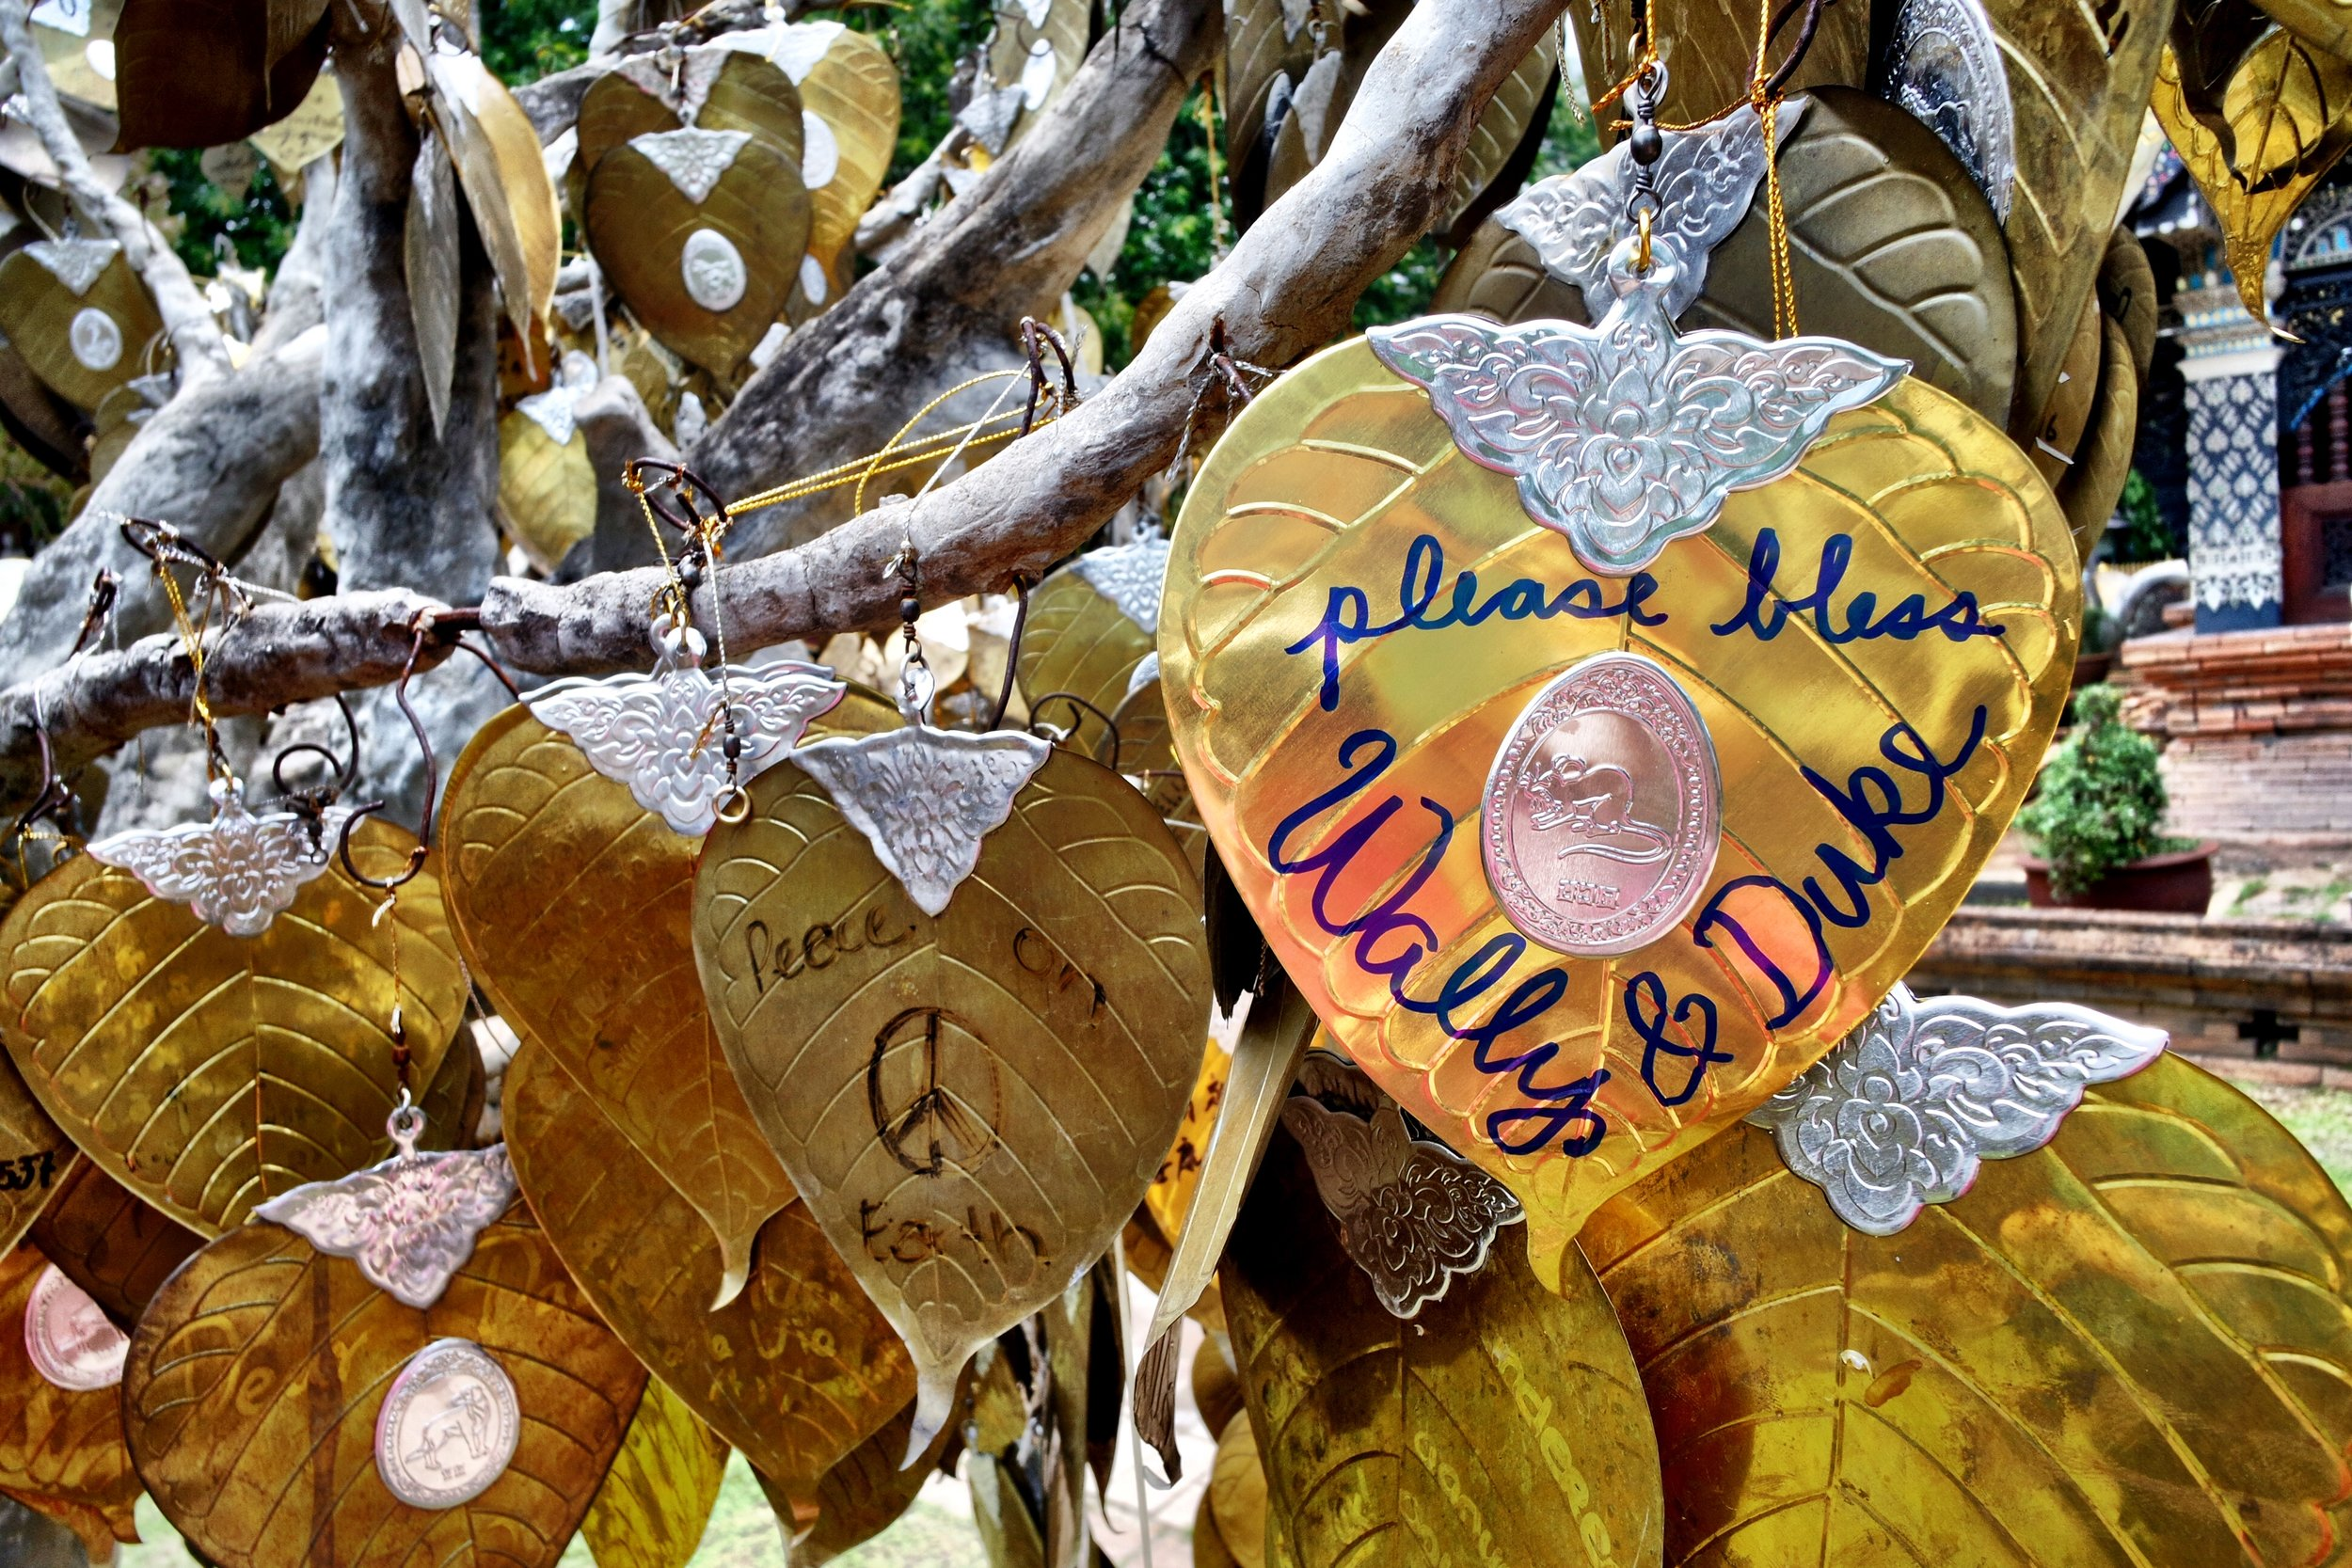 Buy a leaf from the stall out front and write a wish on it. Then hang it on the trees that stand on either side of the main temple